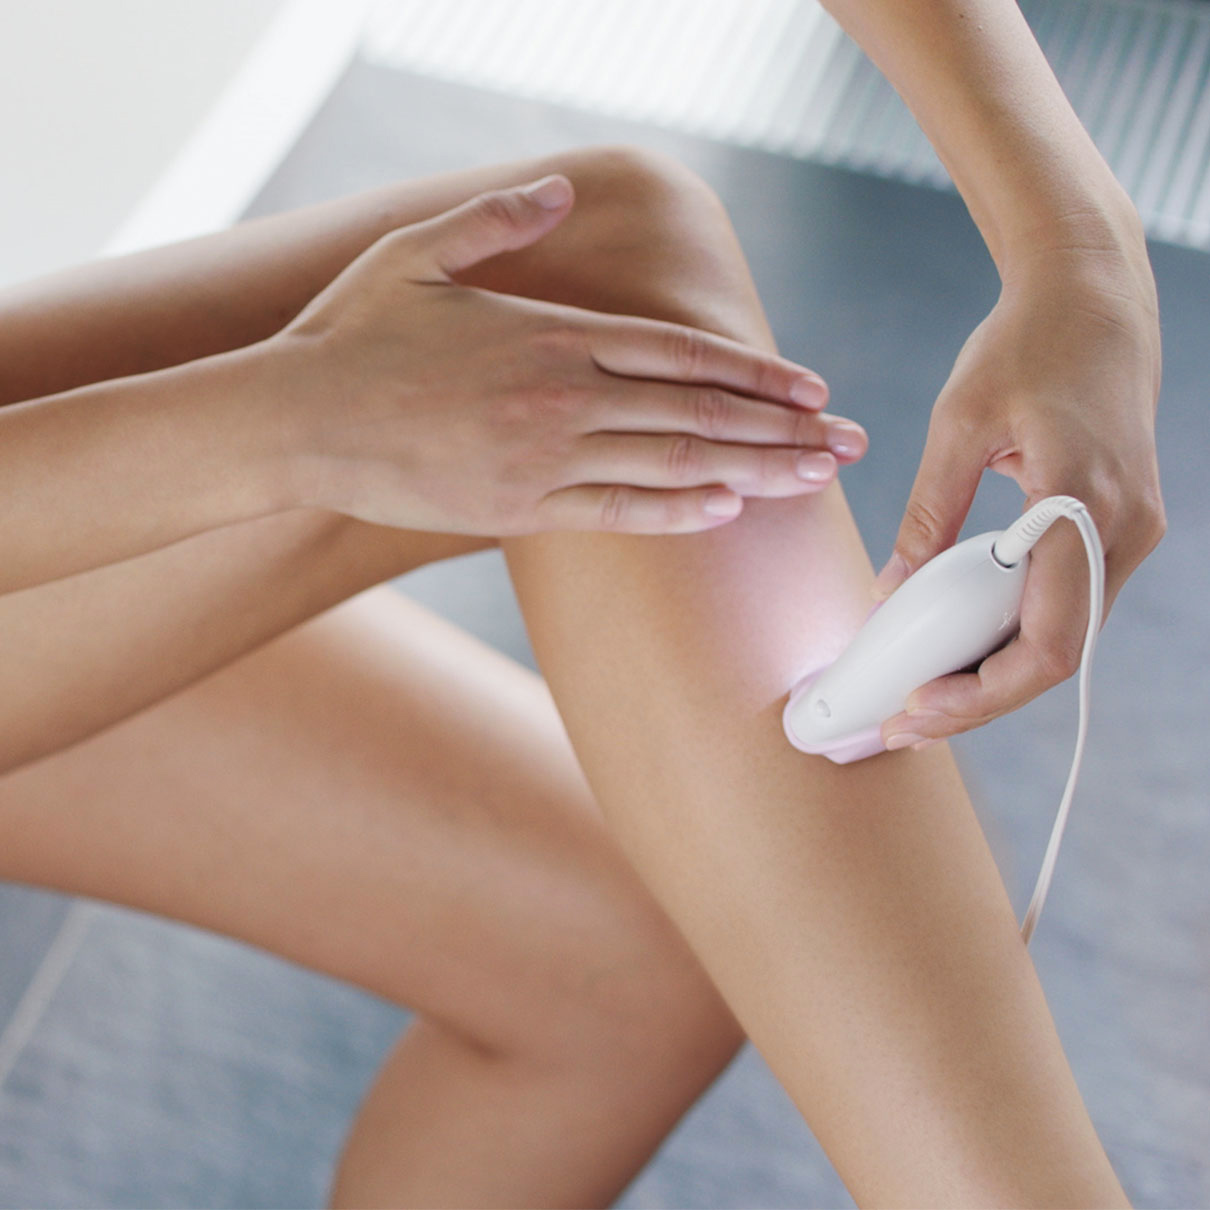 Silk-épil 3 3-321 epilator in use